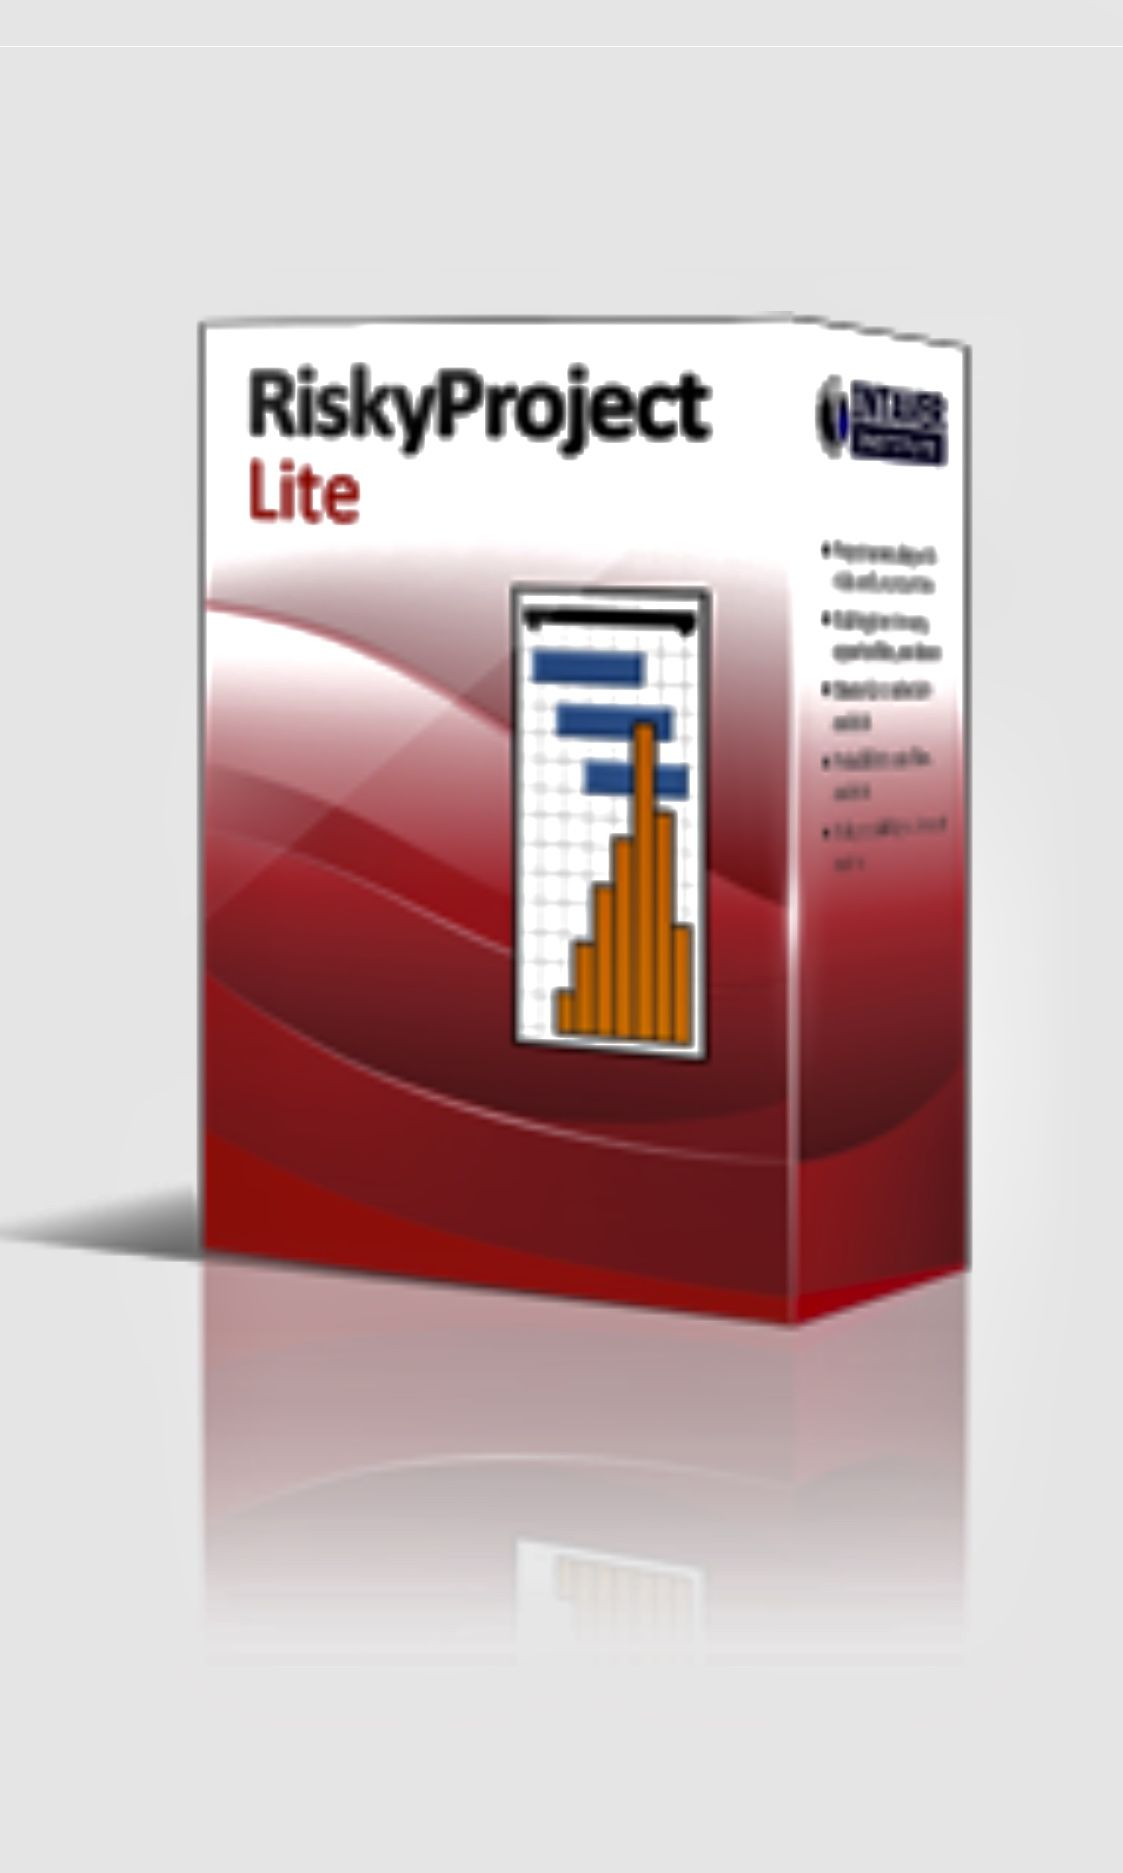 Riskyproject Lite Is A Schedule Risk Analysis Software